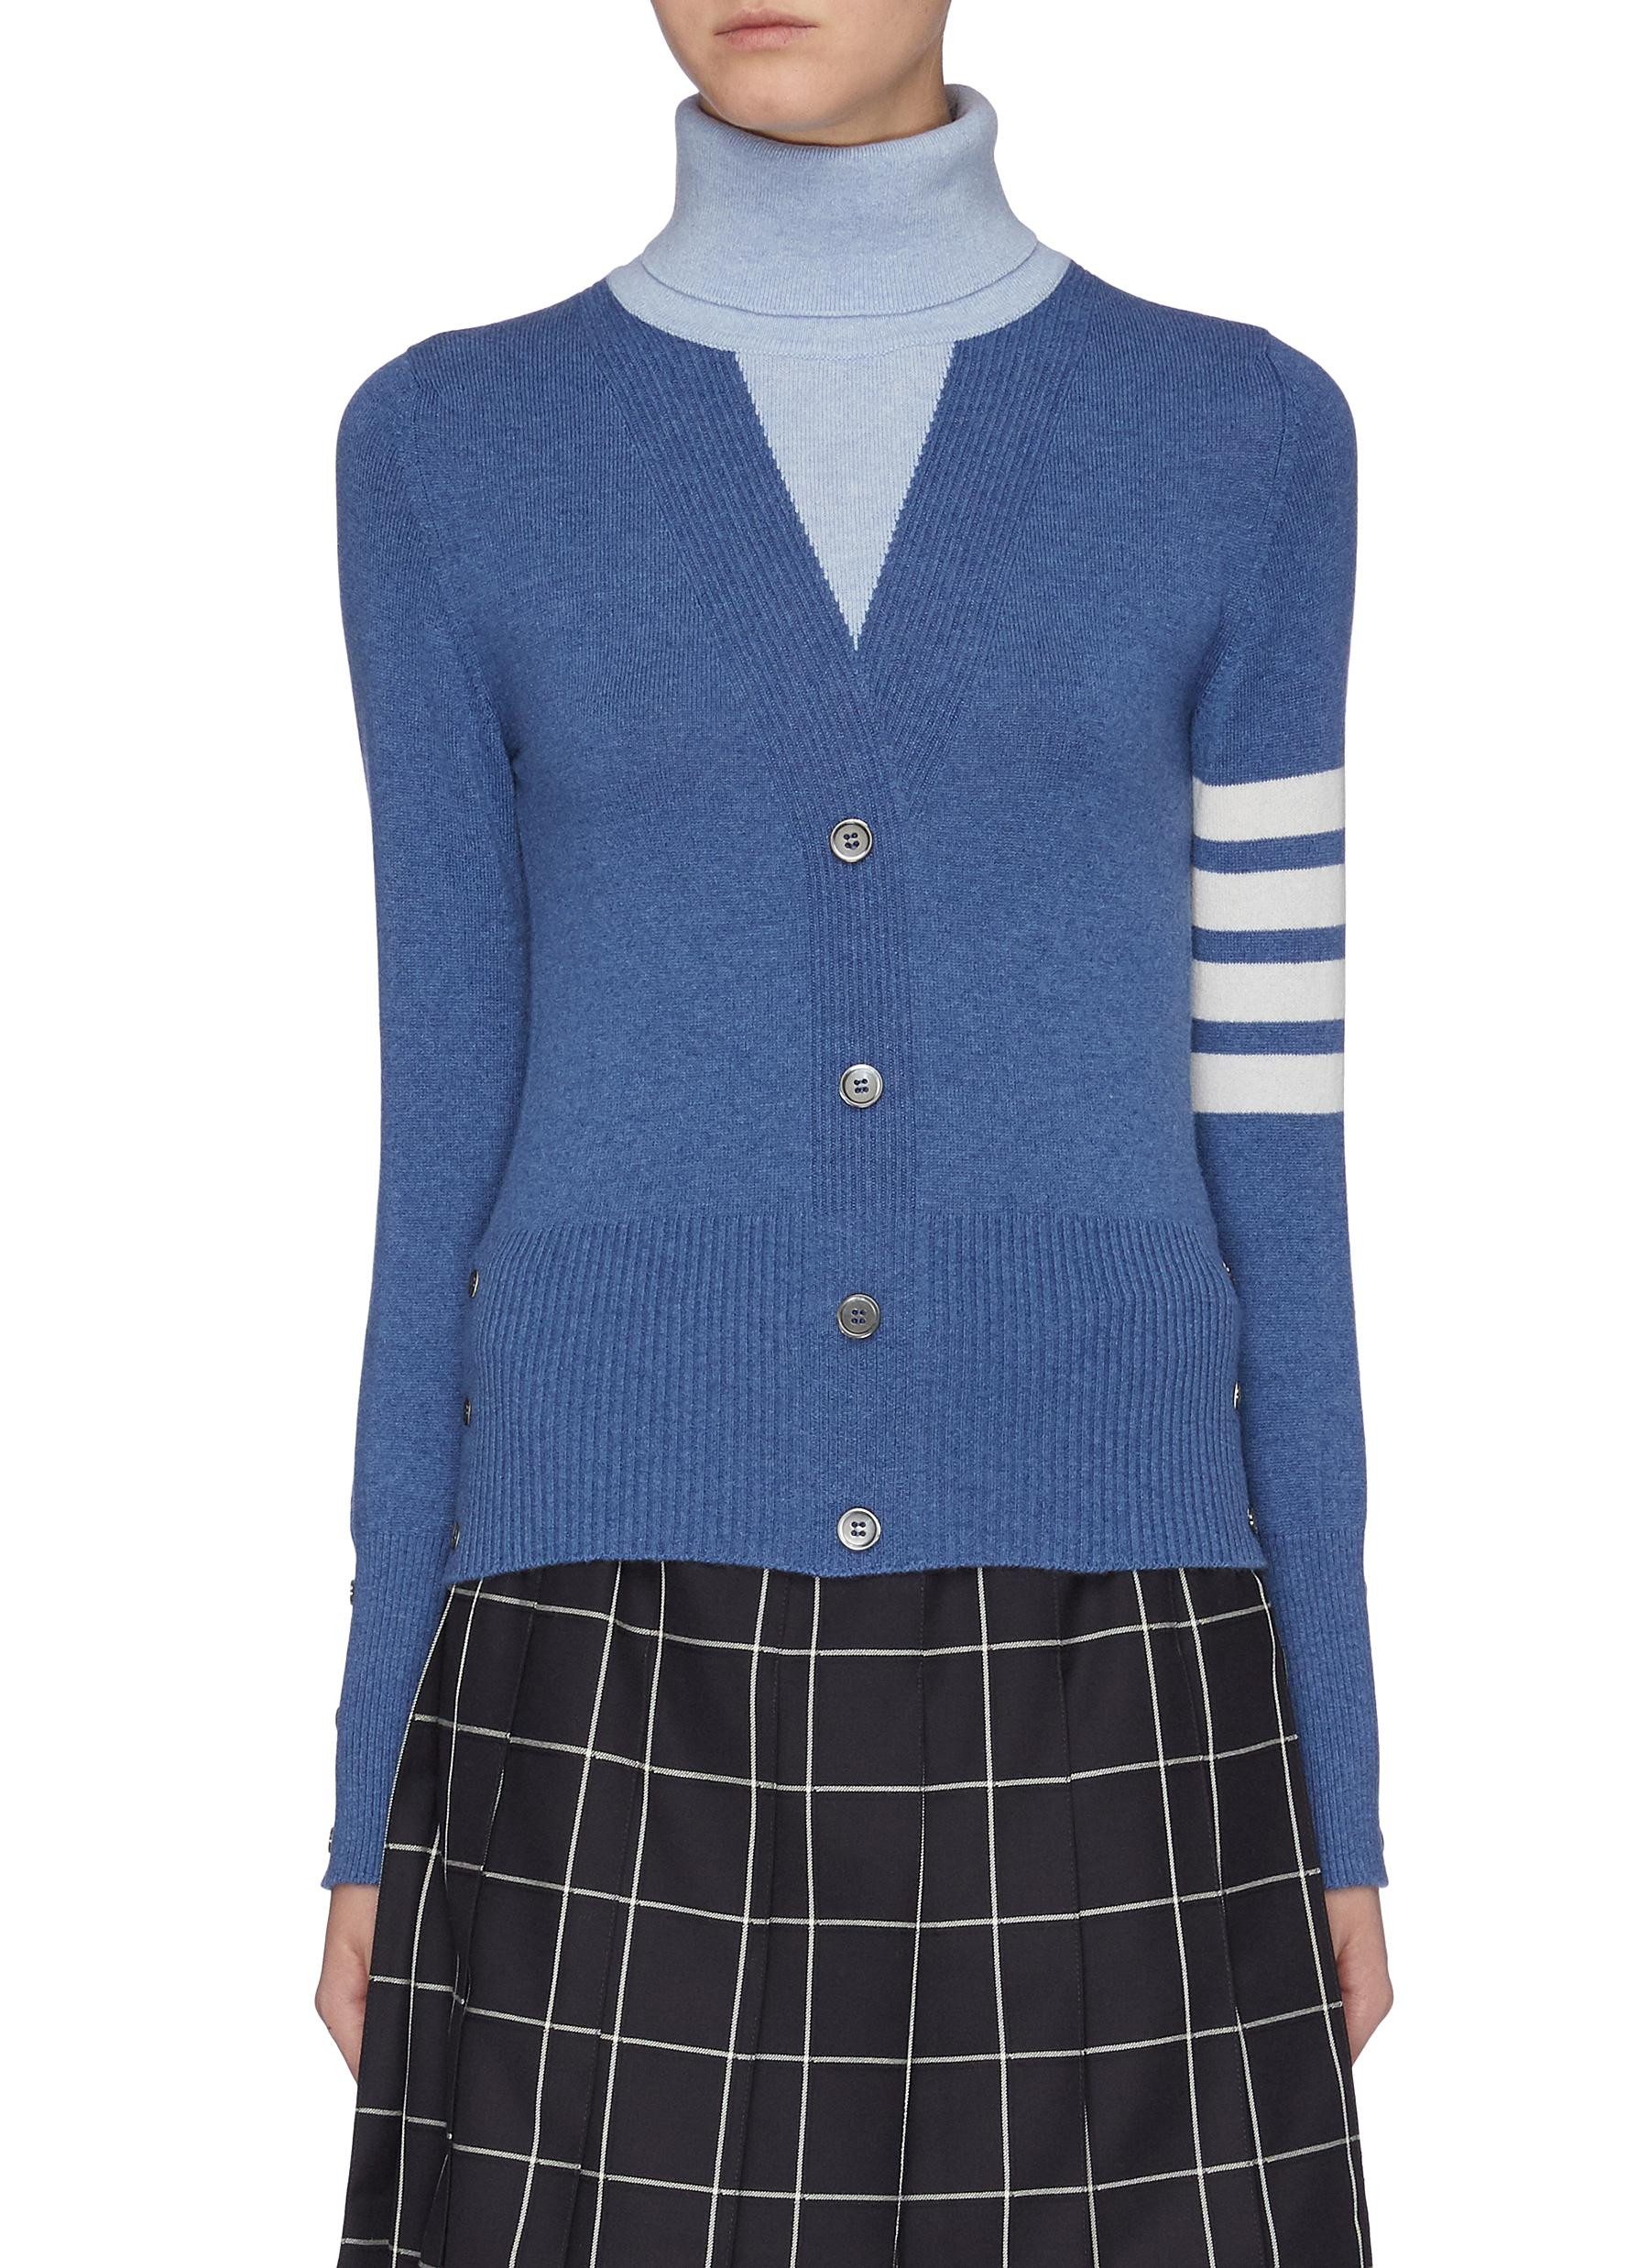 Stripe sleeve trompe lail colourblock cashmere turtleneck sweater by Thom Browne